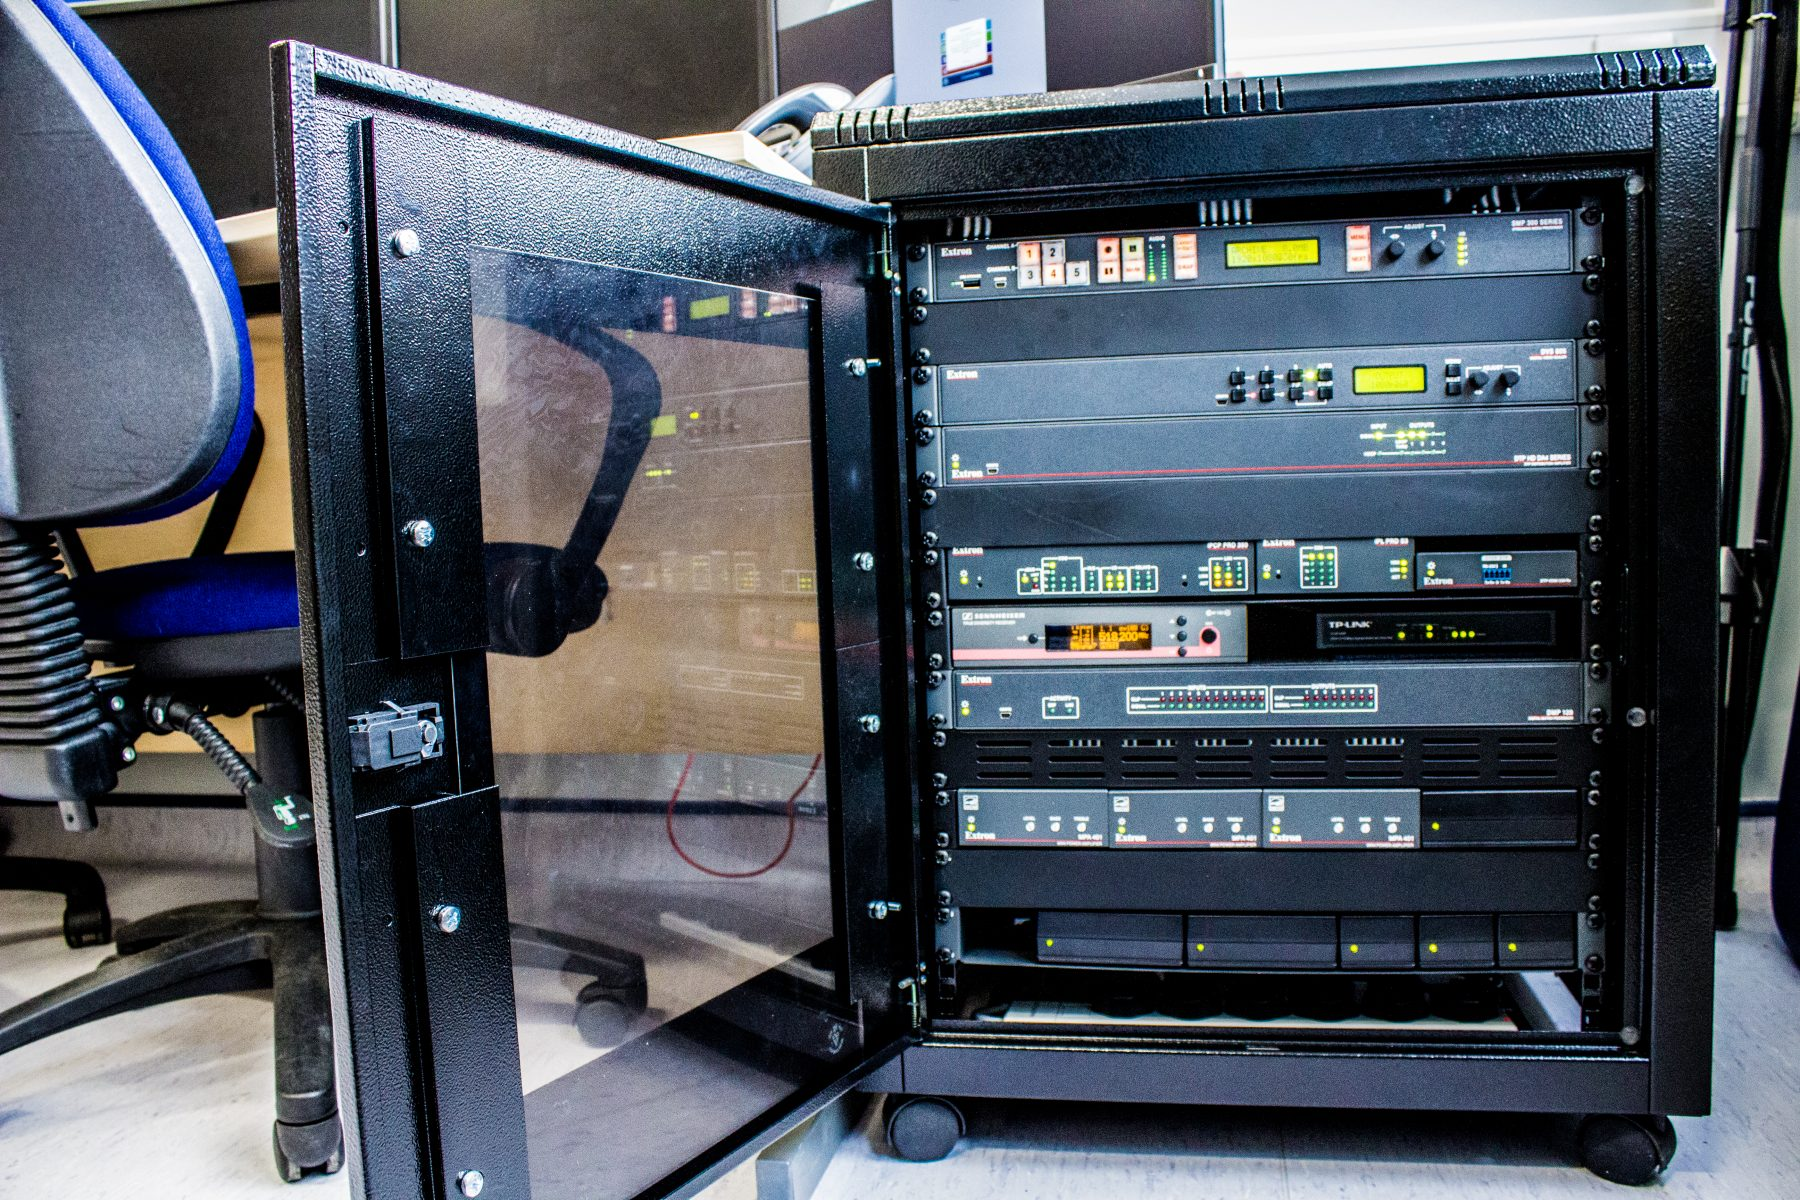 HYMS Simulation Suite Rack